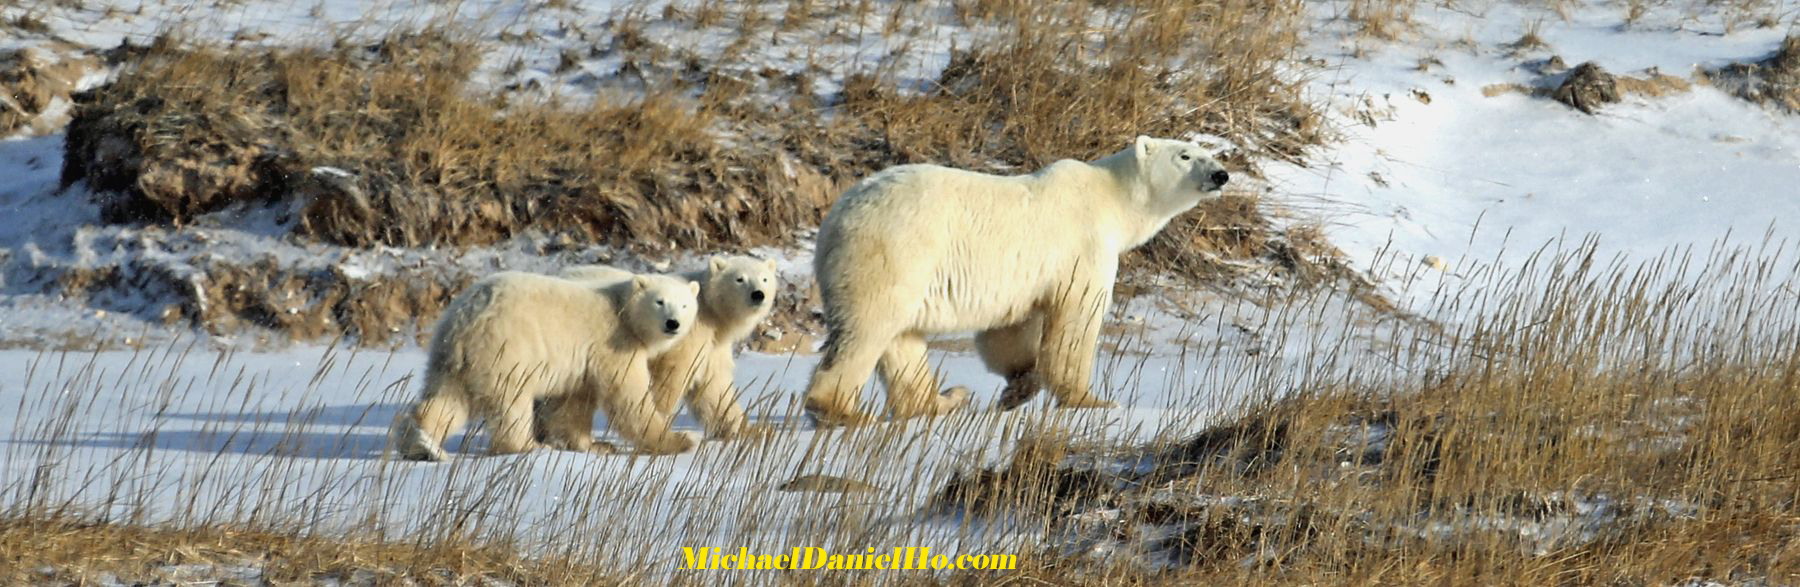 photo of polar bear with cubs